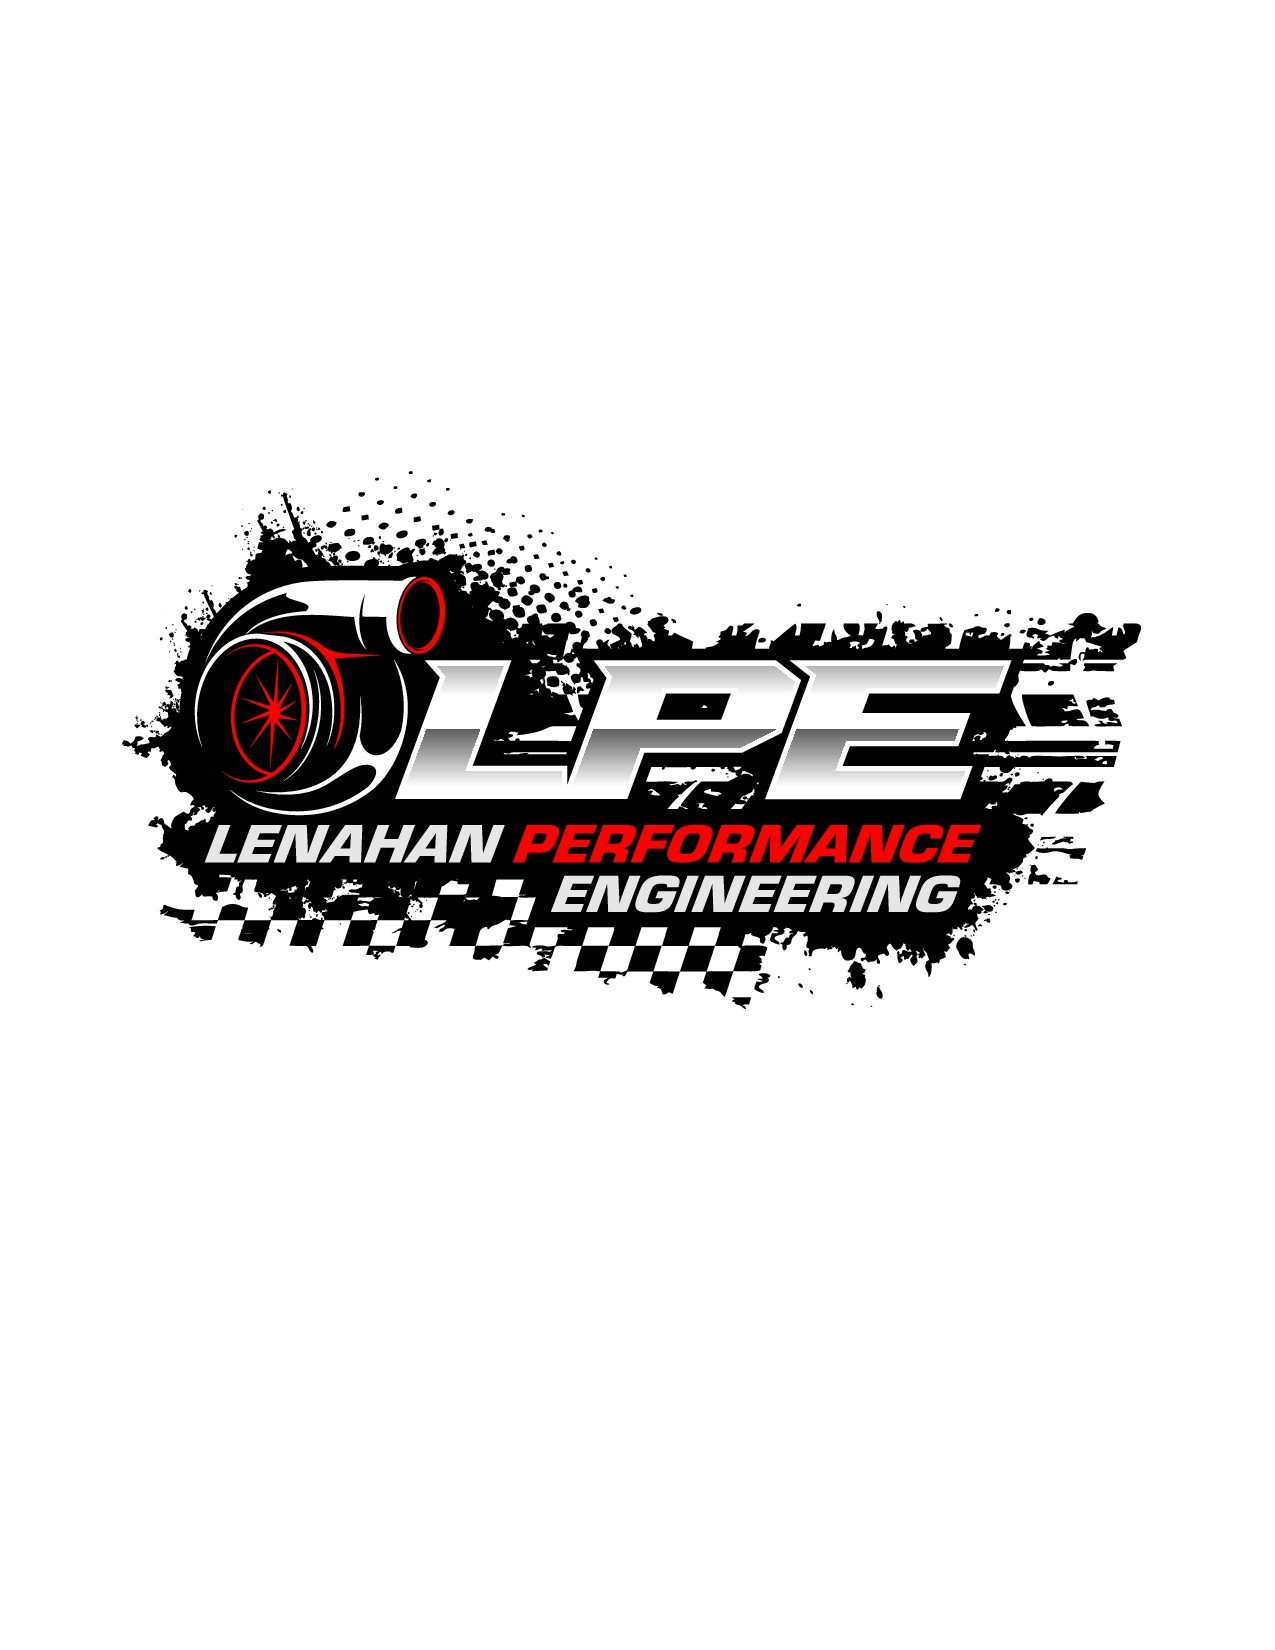 New logo design for a diesel performance company- create horsepower for us!